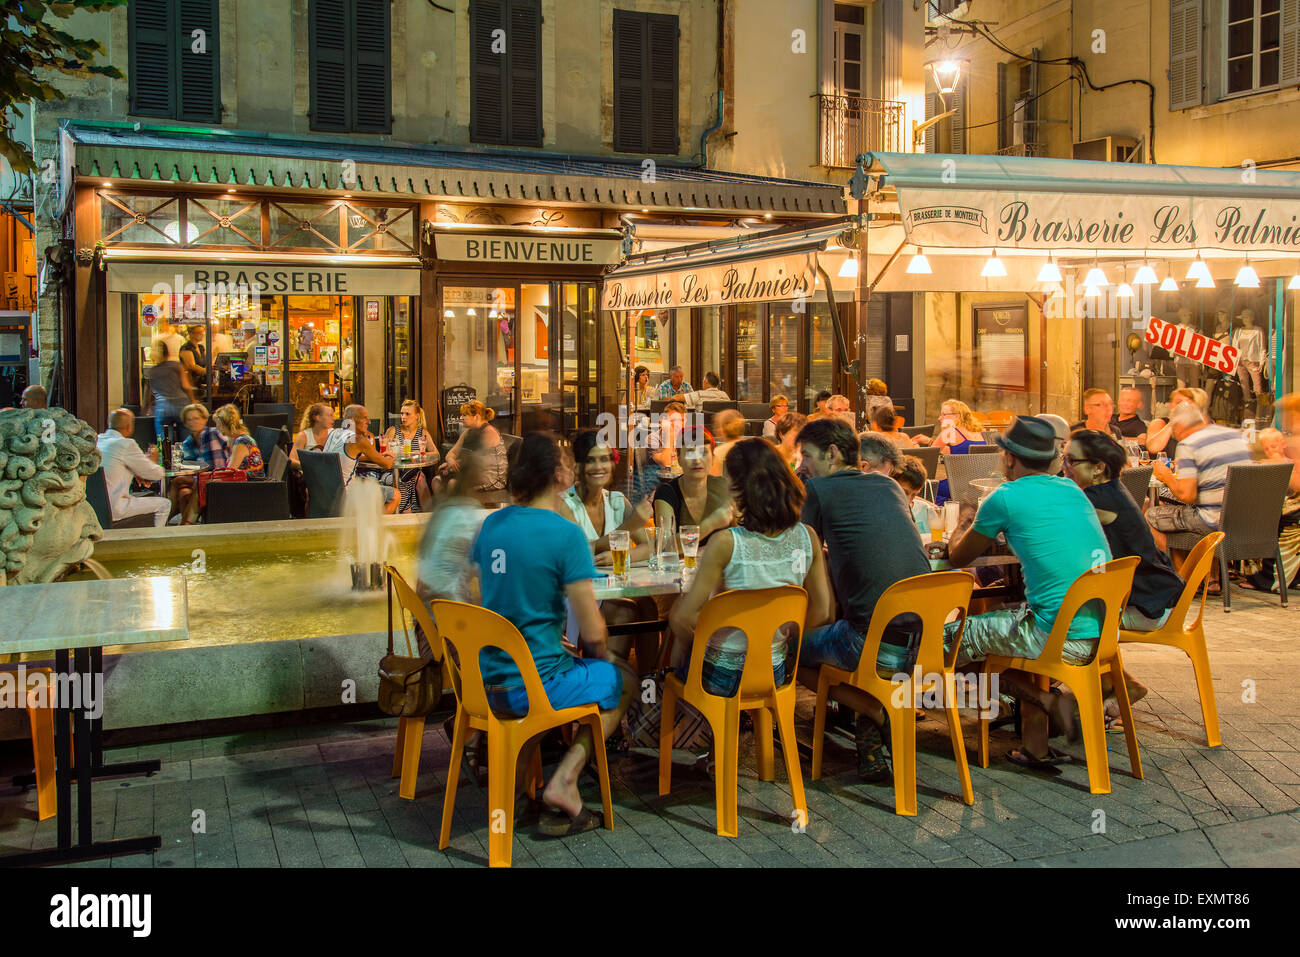 Night view of a Brasserie cafe restaurant with people seated outside at tables, Carpentras, Provence, France - Stock Image